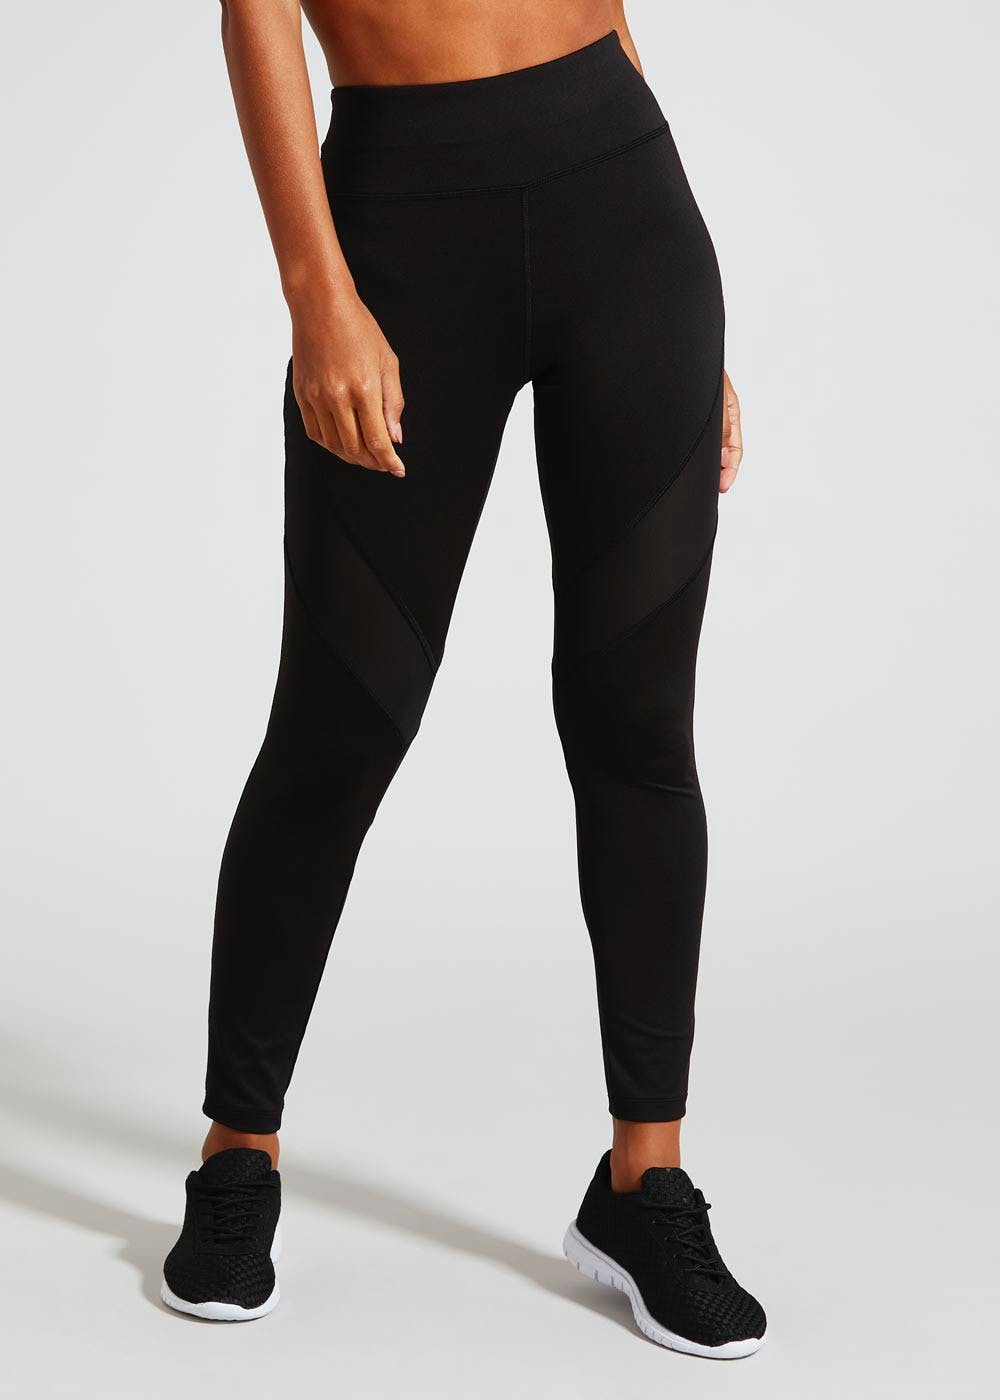 shop for luxury best loved wholesale outlet Souluxe Mesh Panel Gym Leggings